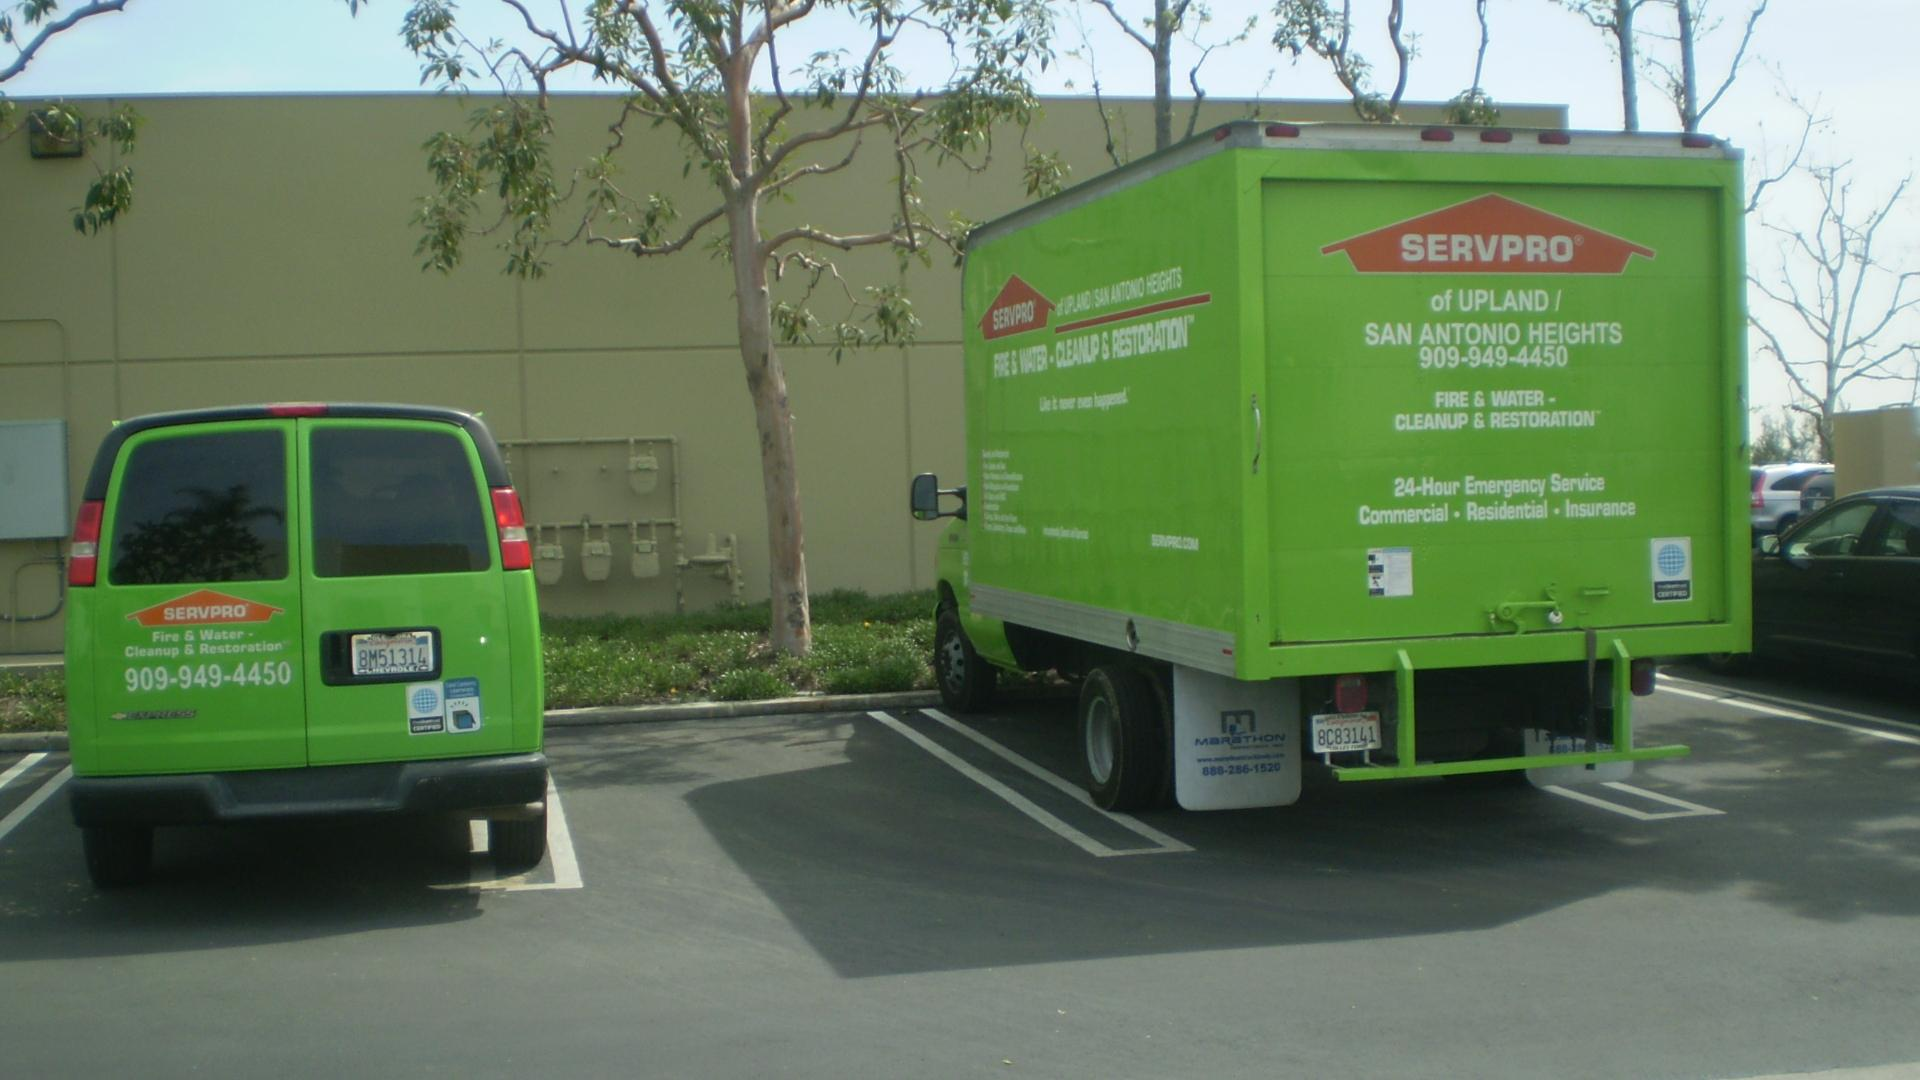 Servpro Of Upland And San Antonio Heights In Upland Ca